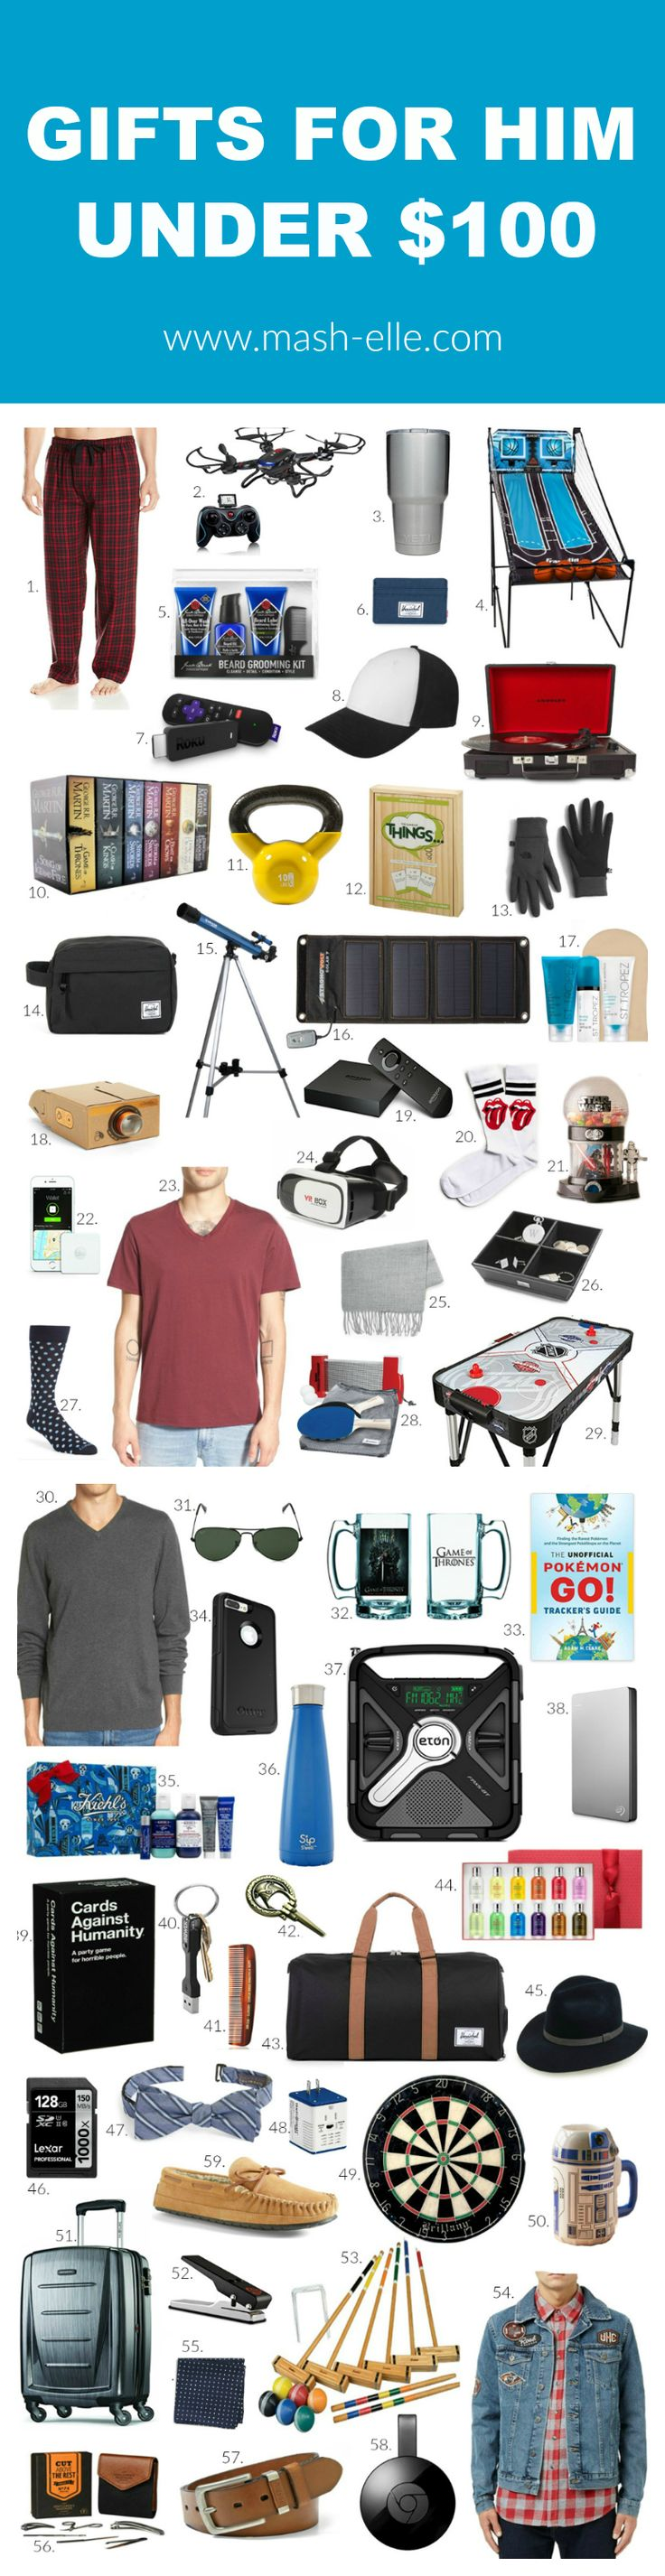 Best 25+ Men gifts ideas on Pinterest | Stocking stuffers for men ...